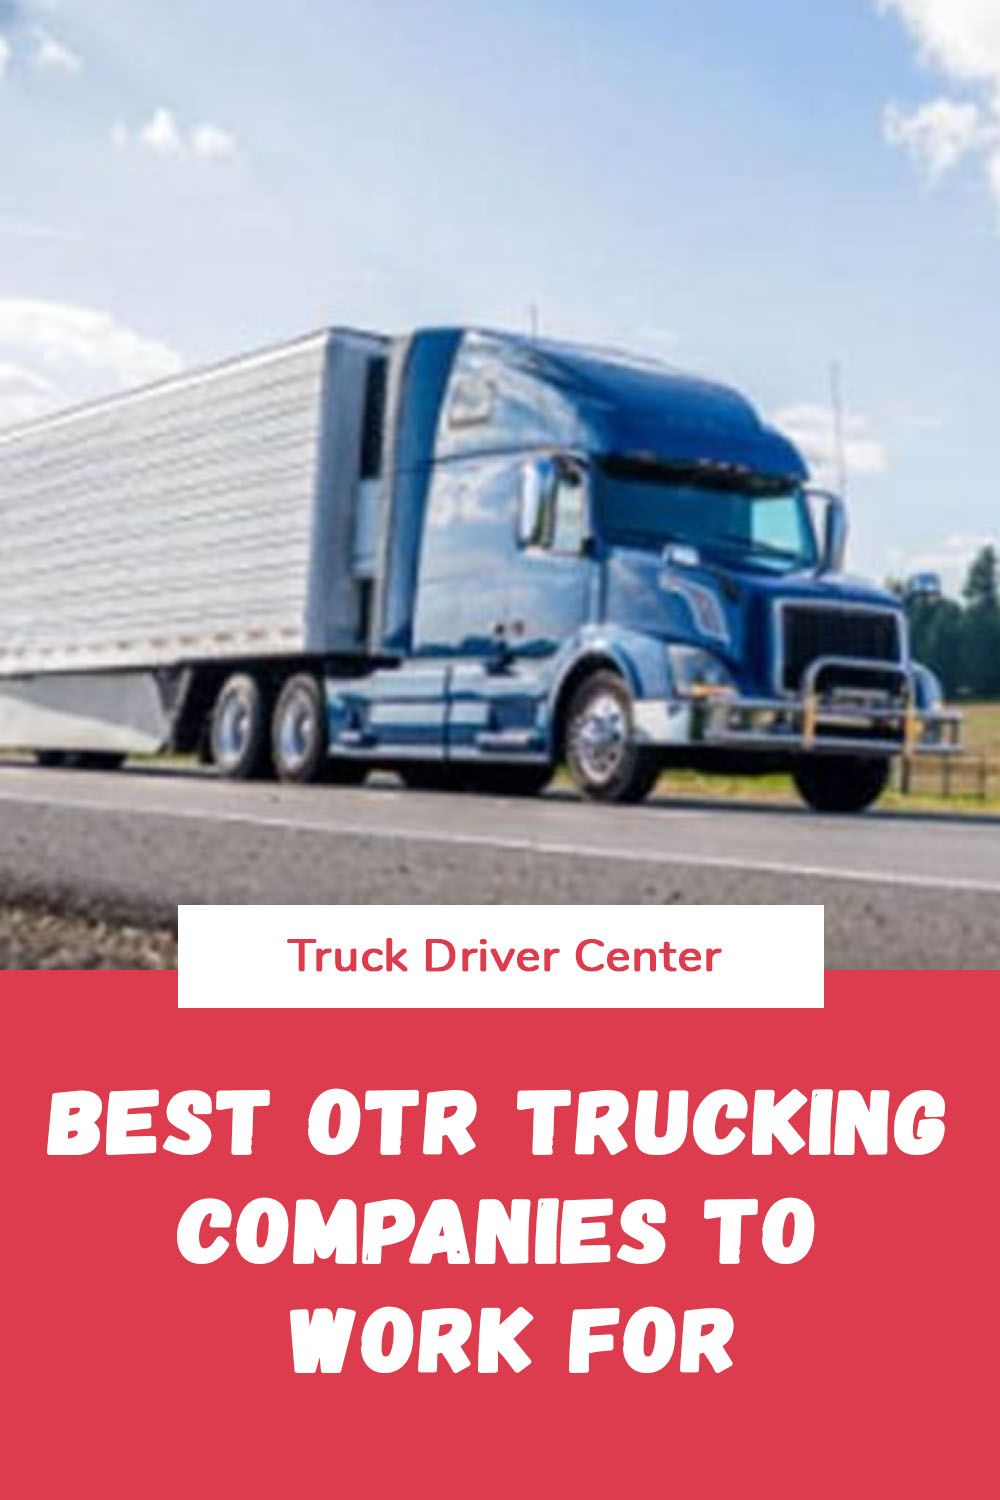 Best OTR Trucking Companies to Work For in 2020 Trucking